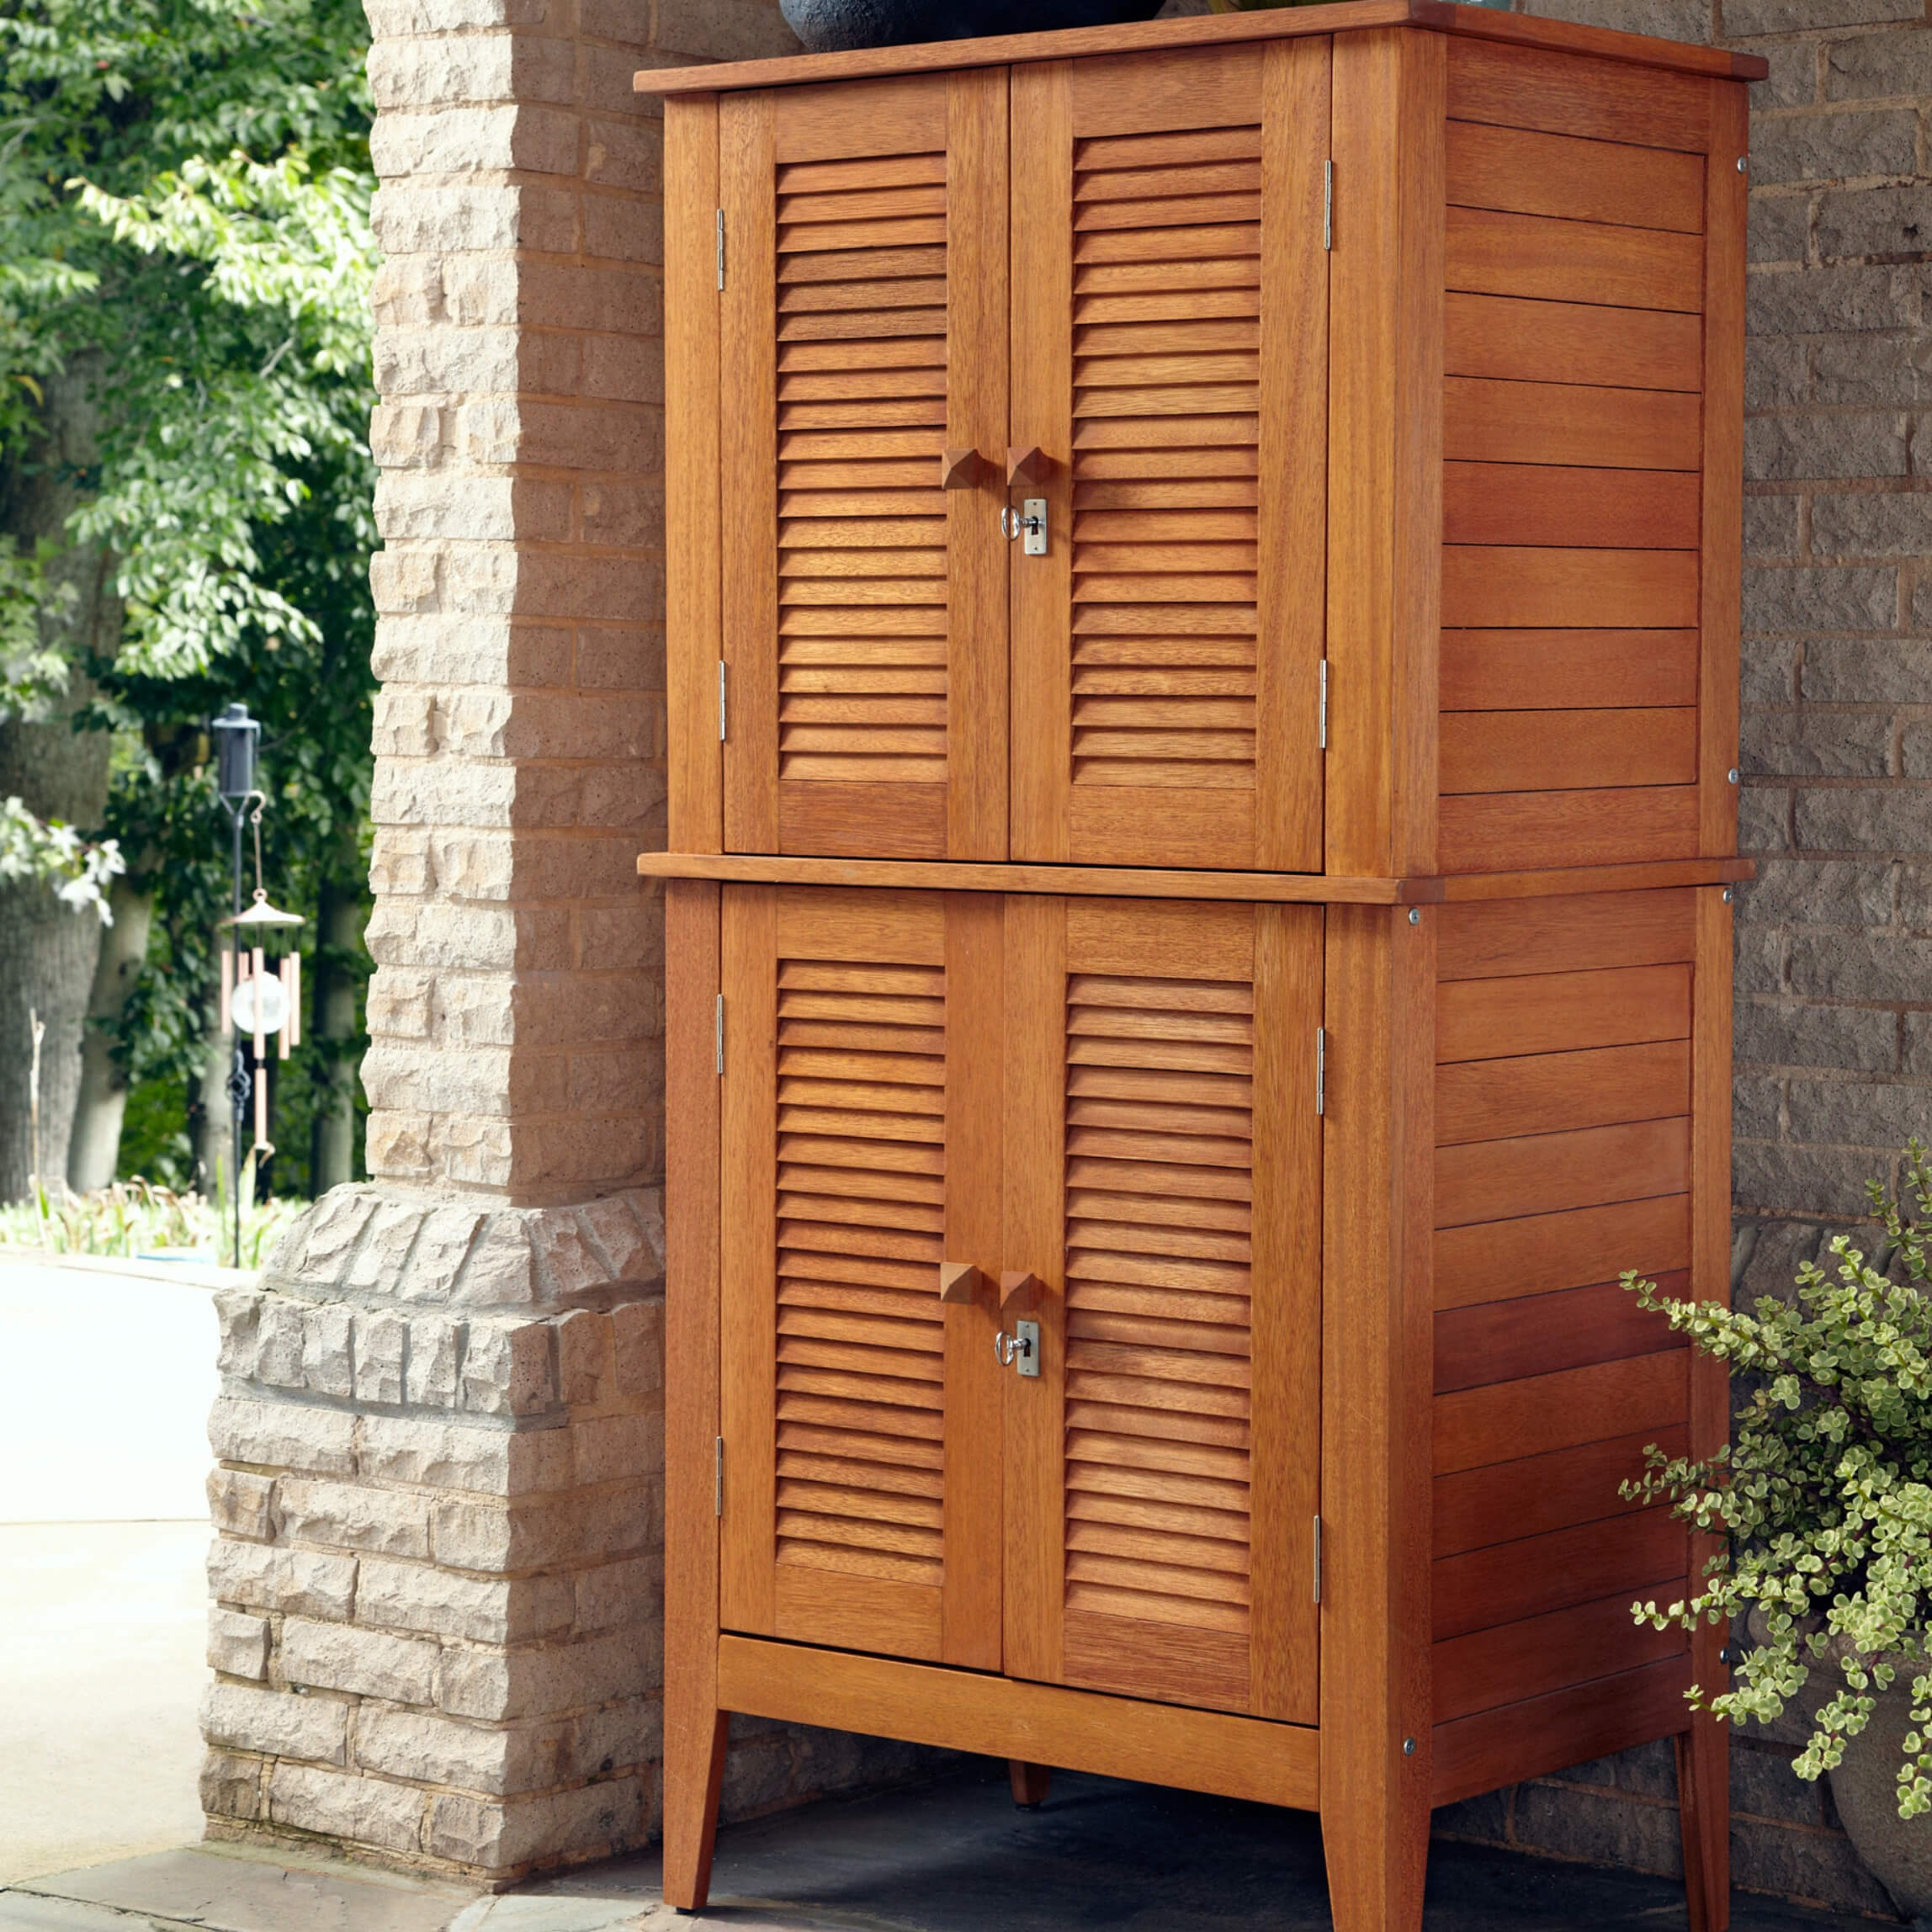 durable storage cabinets this beautiful and durable four-door storage cabinet is crafted out of SZUMPMR